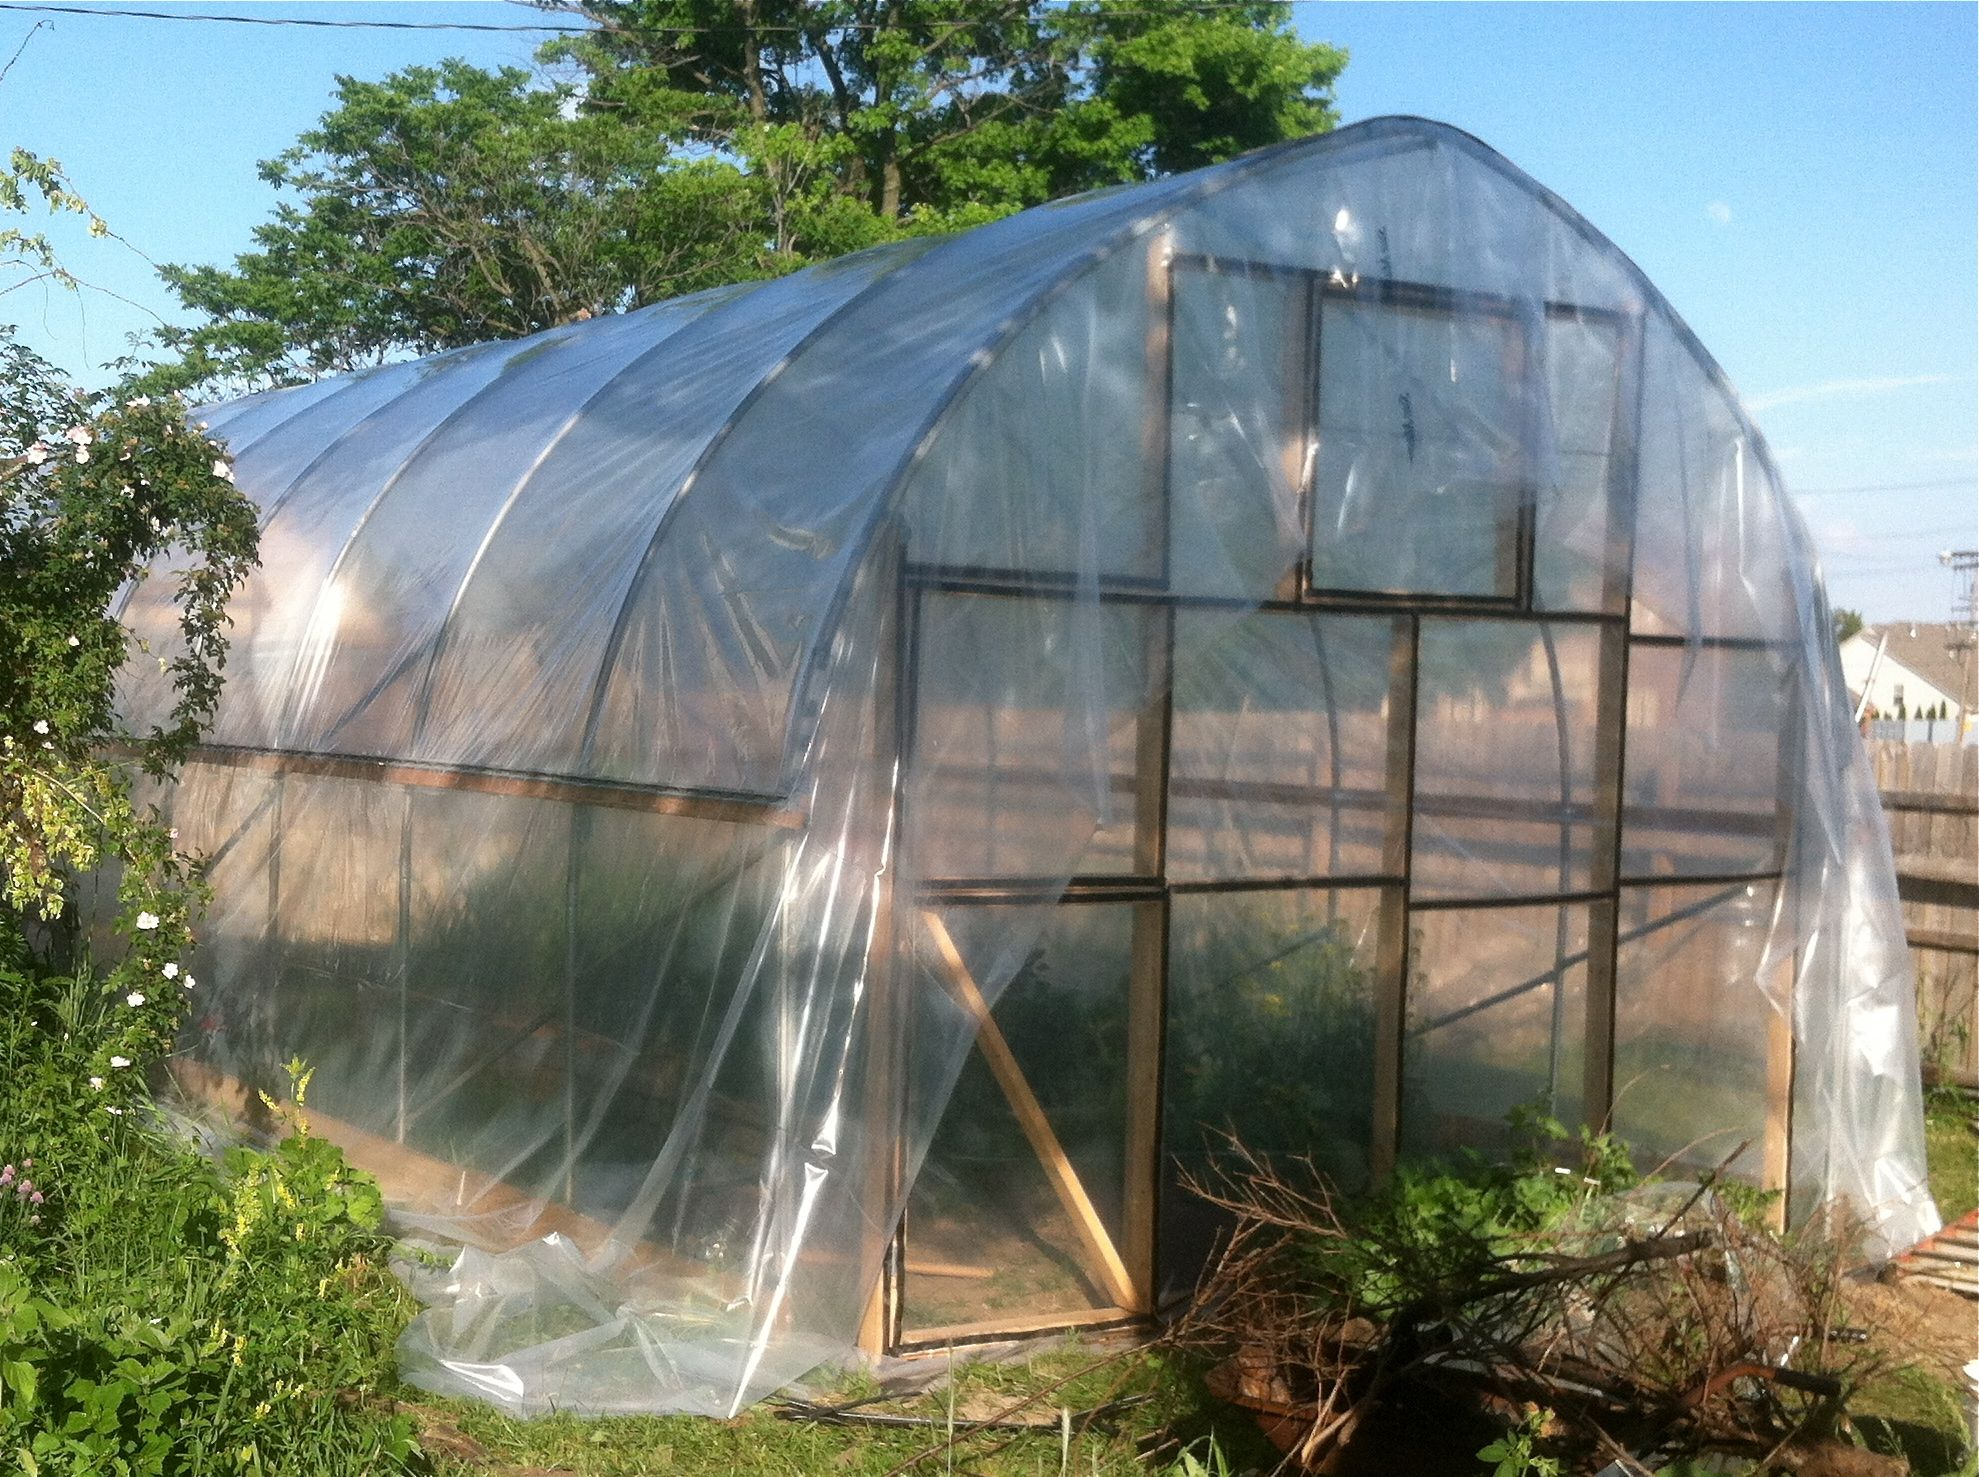 hoop house build part 6: pulling plastic | little house on